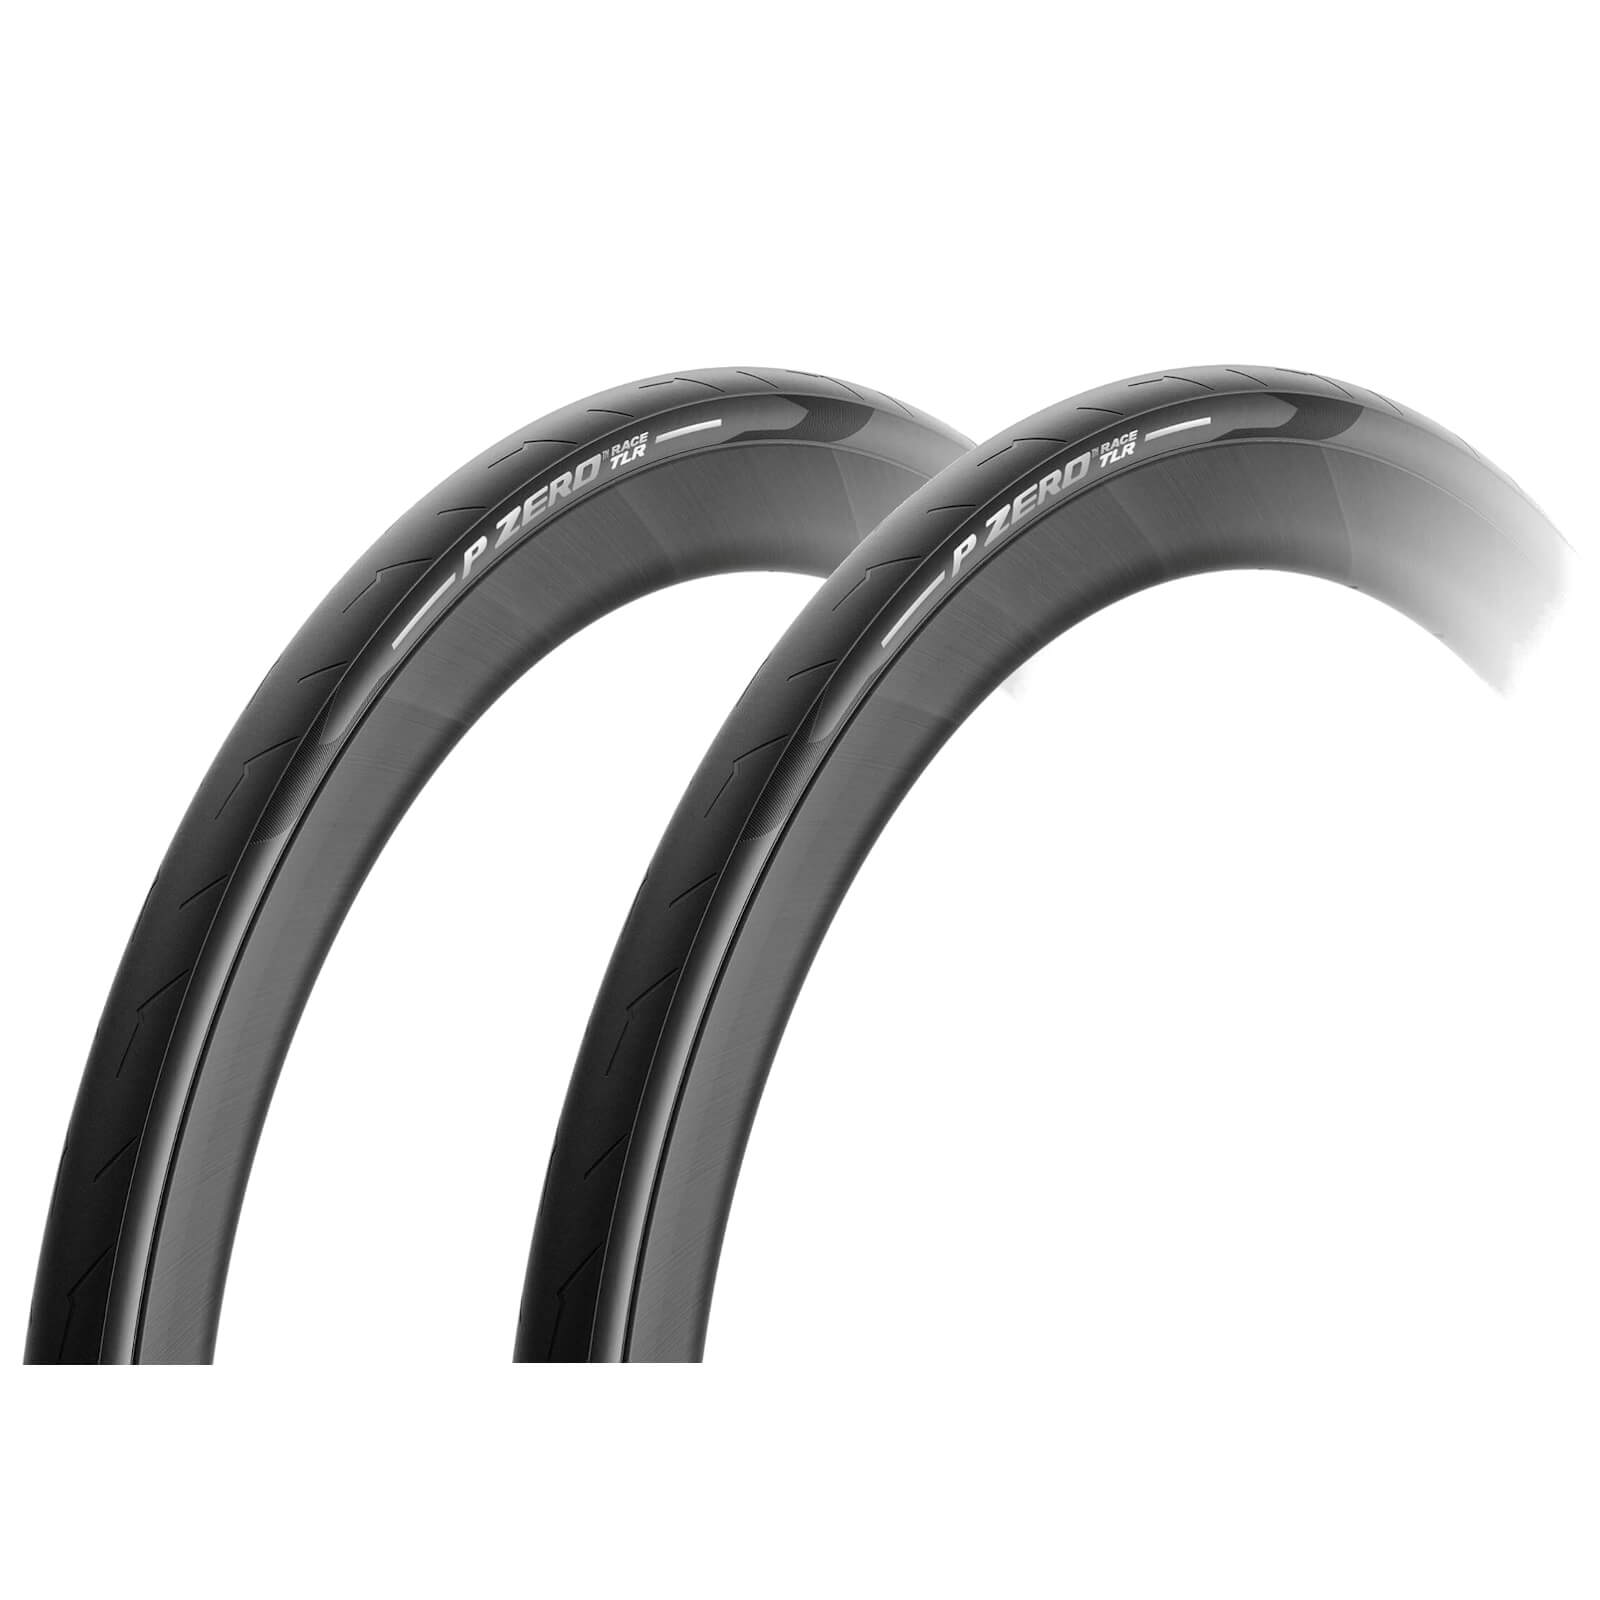 Pirelli P-Zero Race Tubeless Ready Clincher Road Tyre Twin Pack - 700 x 26mm